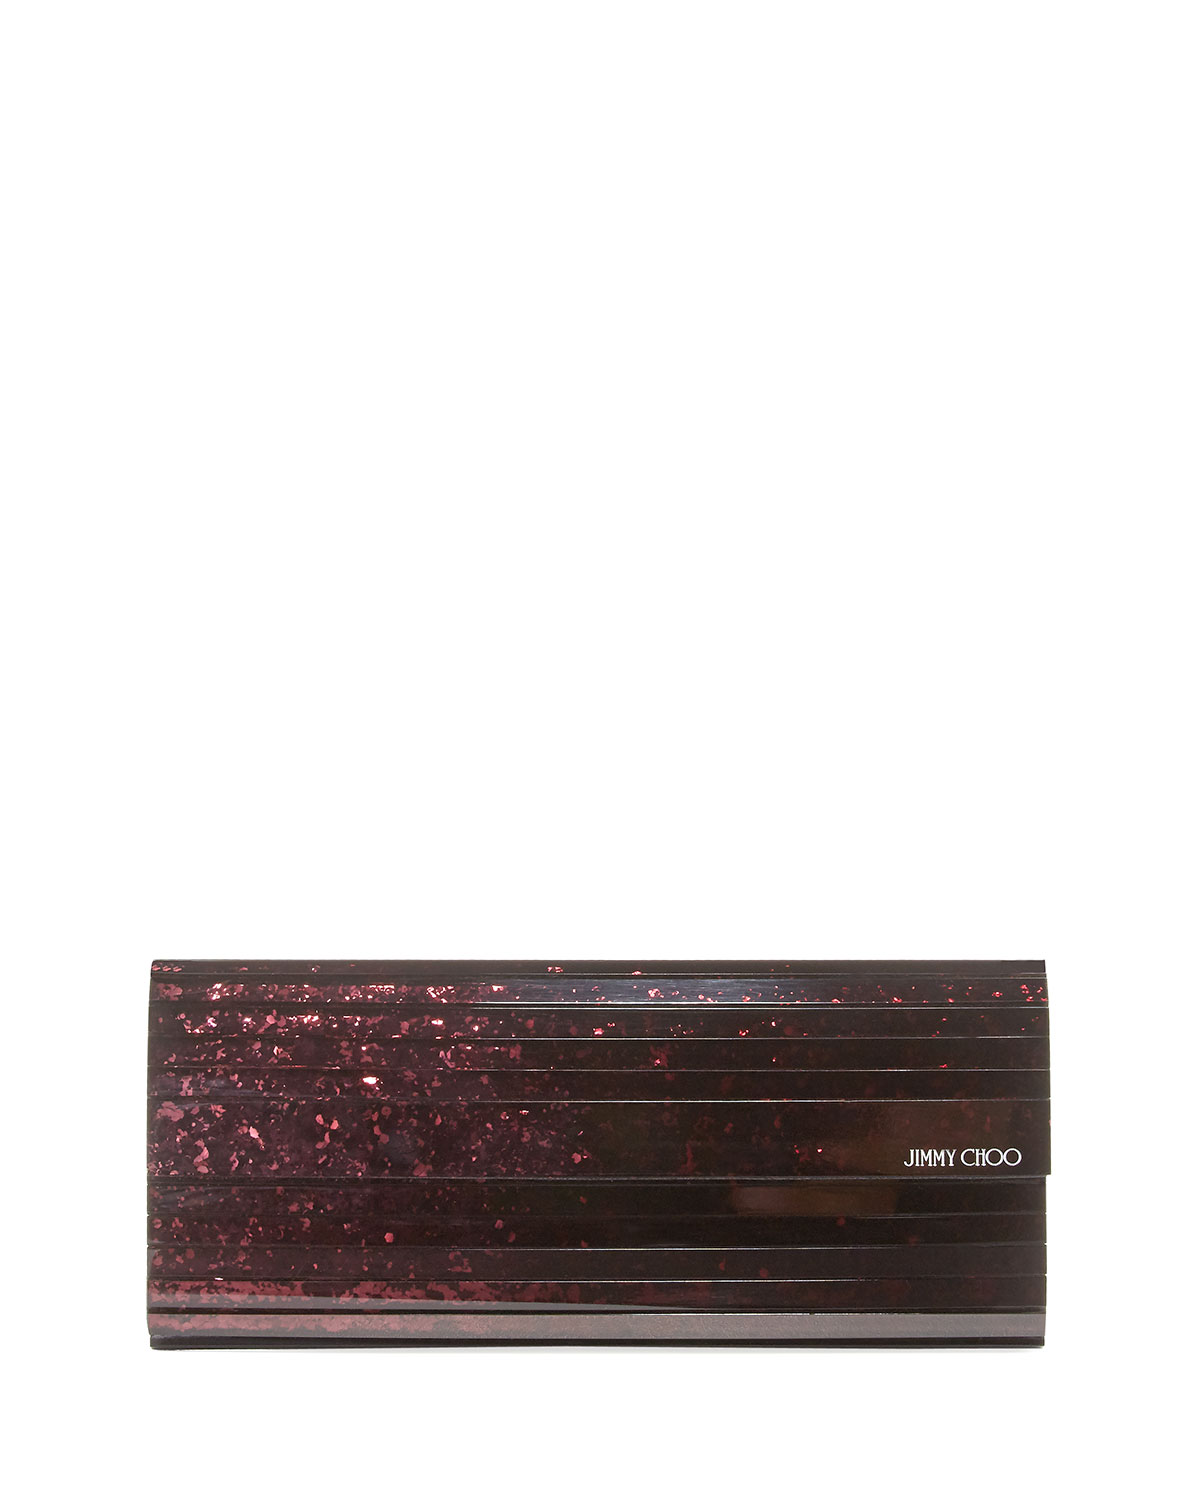 Sweetie Glitter Acrylic Clutch Bag. Add to Favorites Add to Favorites.  Quick Look. Jimmy Choo